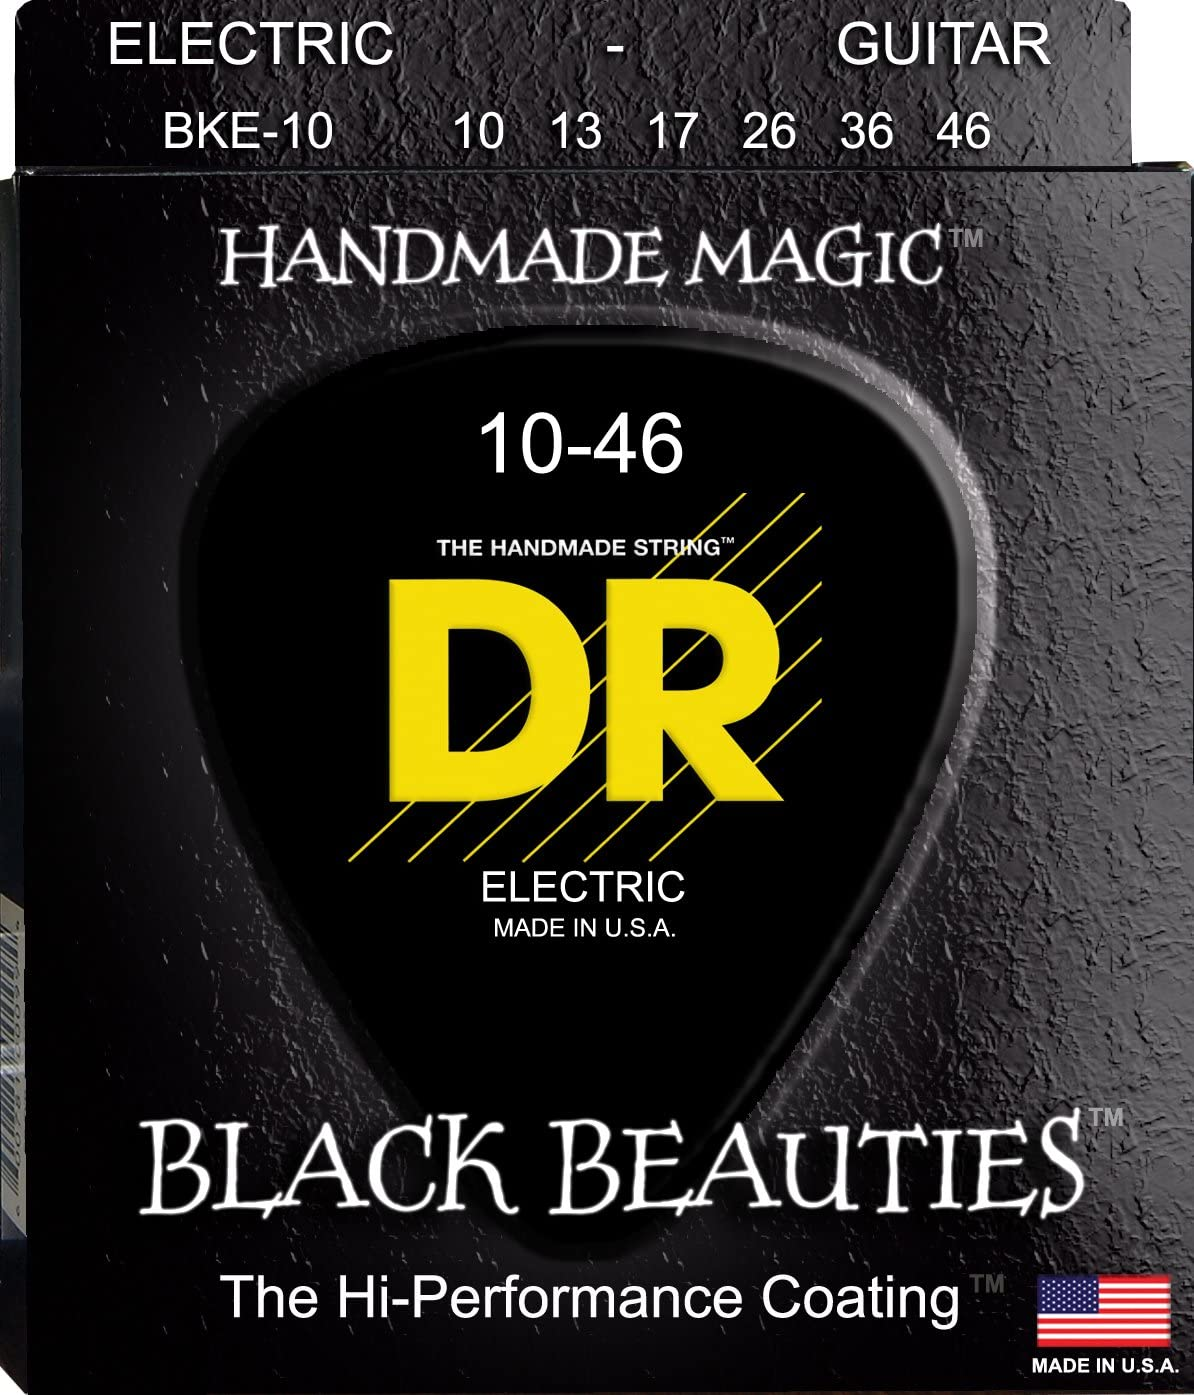 DR Strings Miami Mall Electric Guitar Indianapolis Mall Beauties - Black Coate